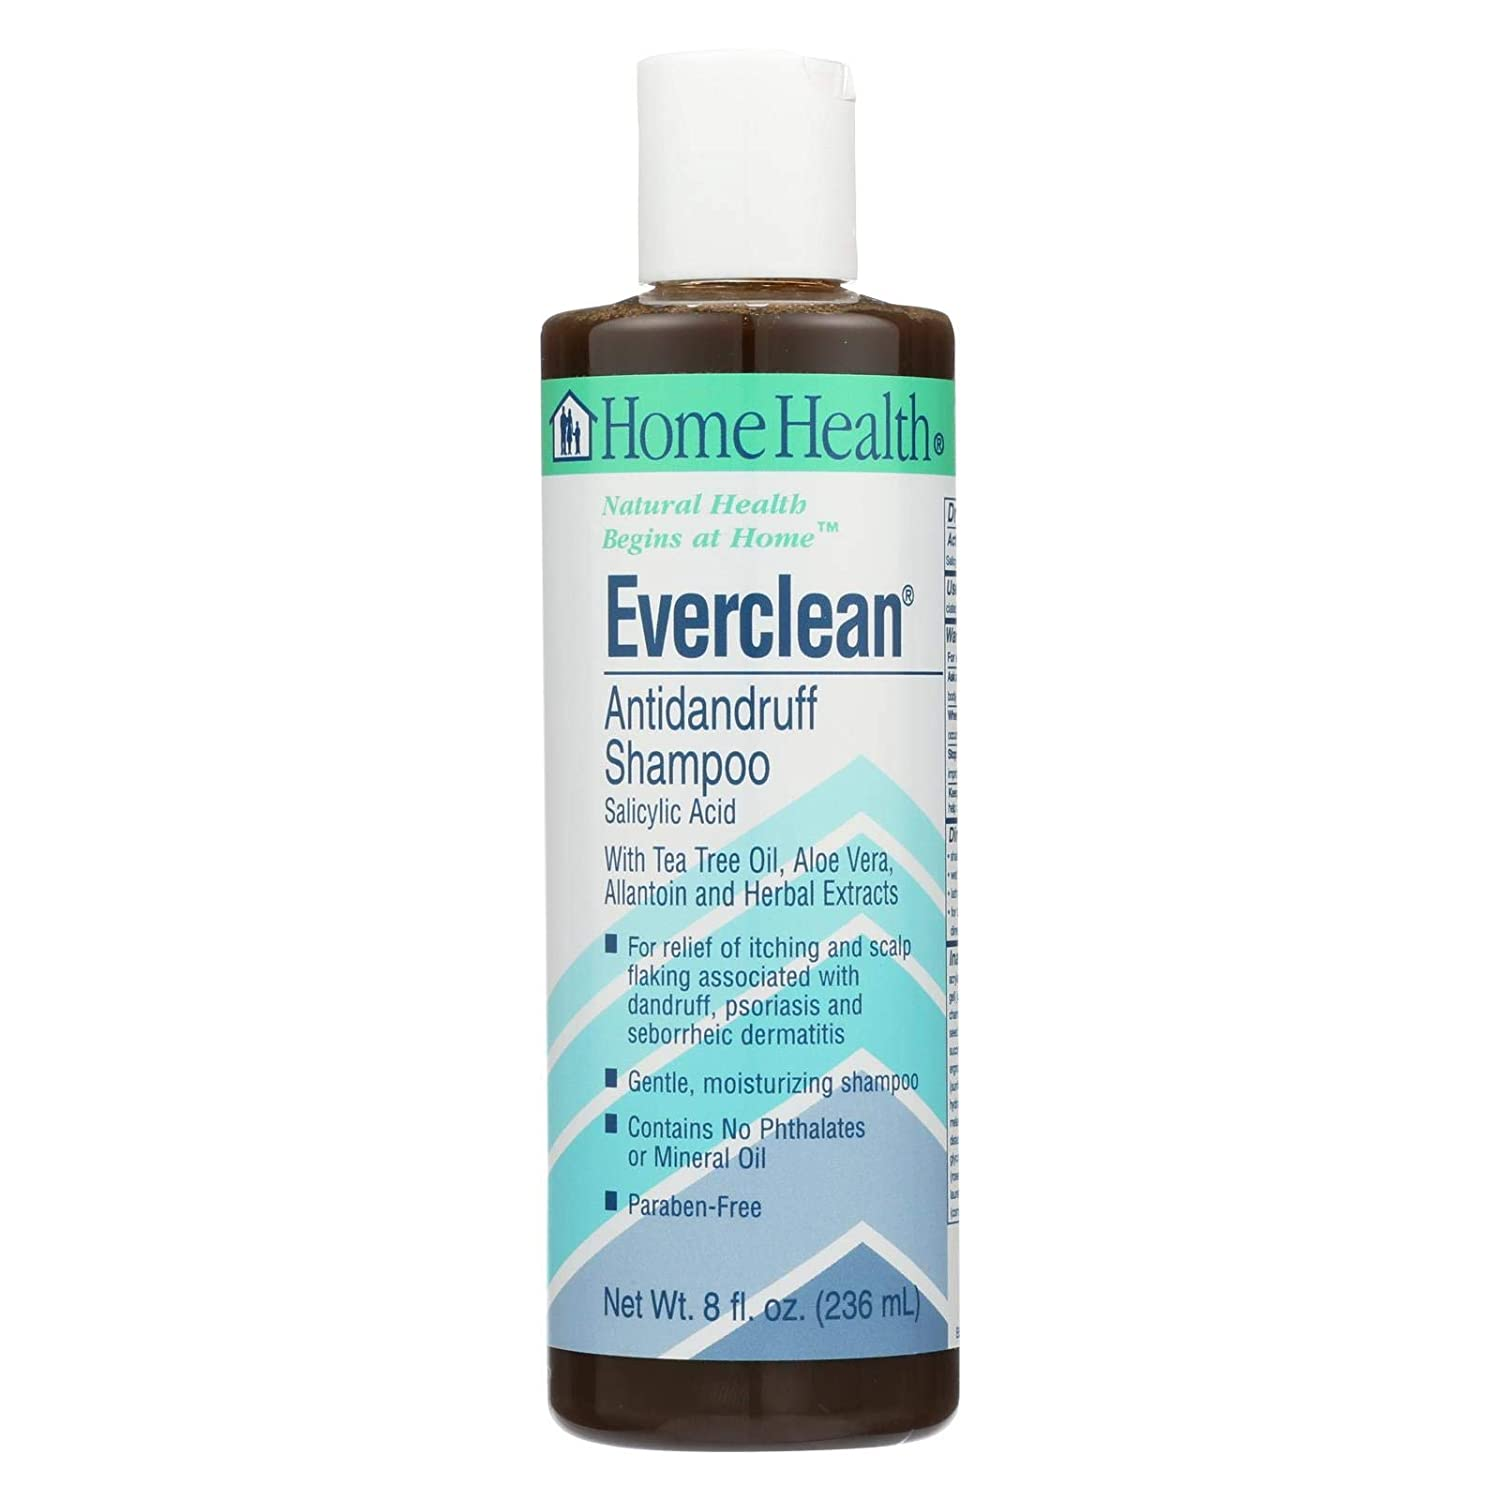 Home Health Everclean Anti Dandruff Shampoo Unscented - 1.8% Salicylic Acid, 8 fl oz - Relieves Itching & Scalp-Flaking, Gentle & Moisturizing For Fresh, Healthy Hair - Paraben-Free, Vegan